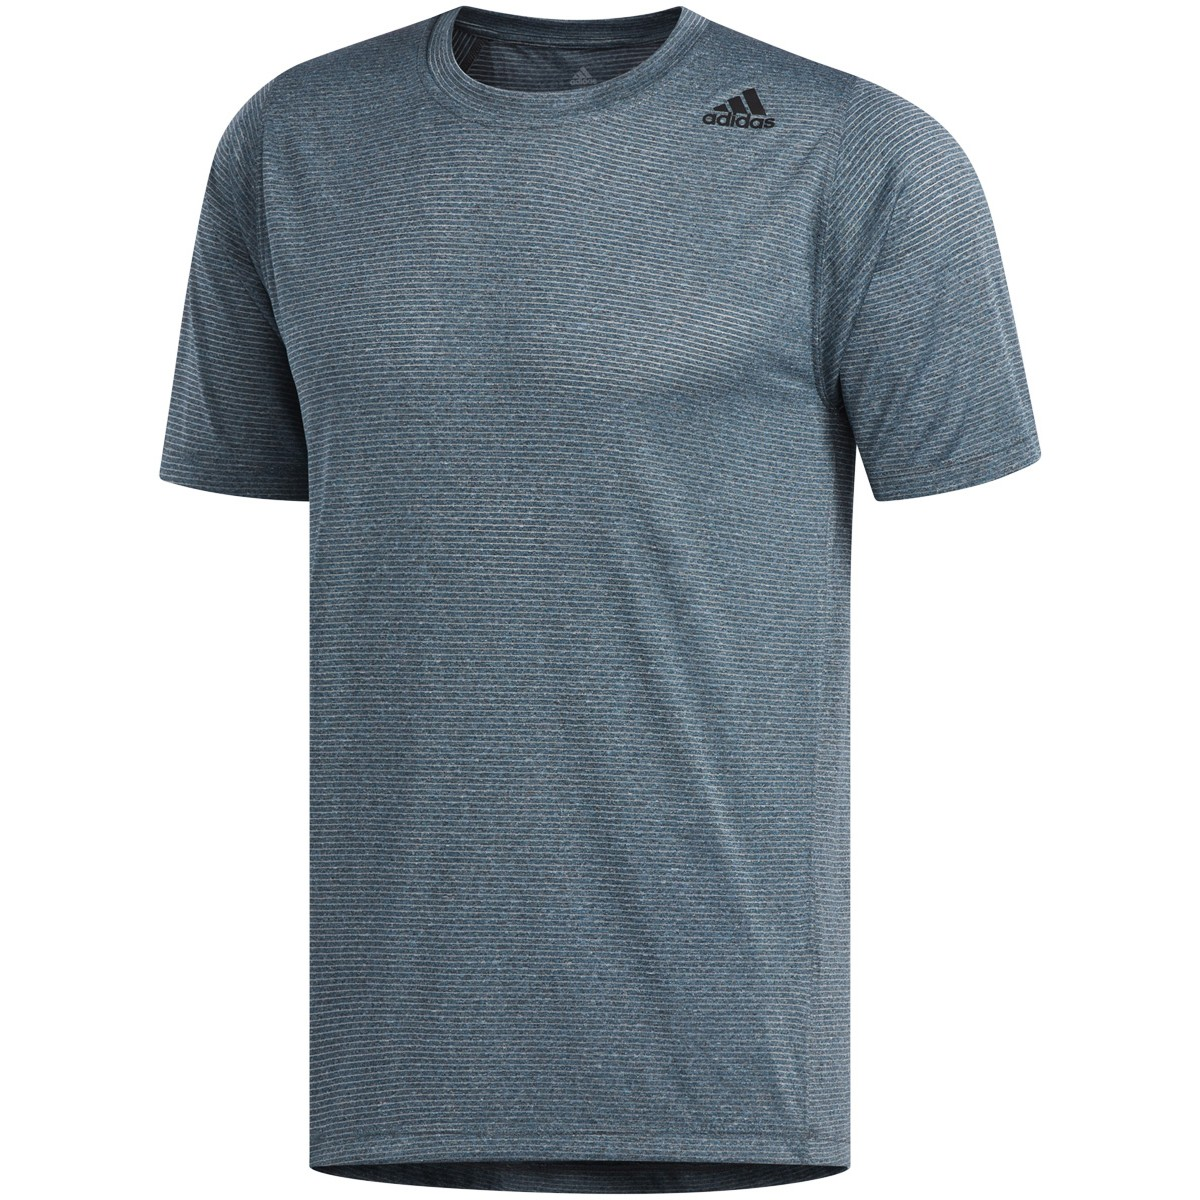 T-SHIRT ADIDAS FITTED FIT